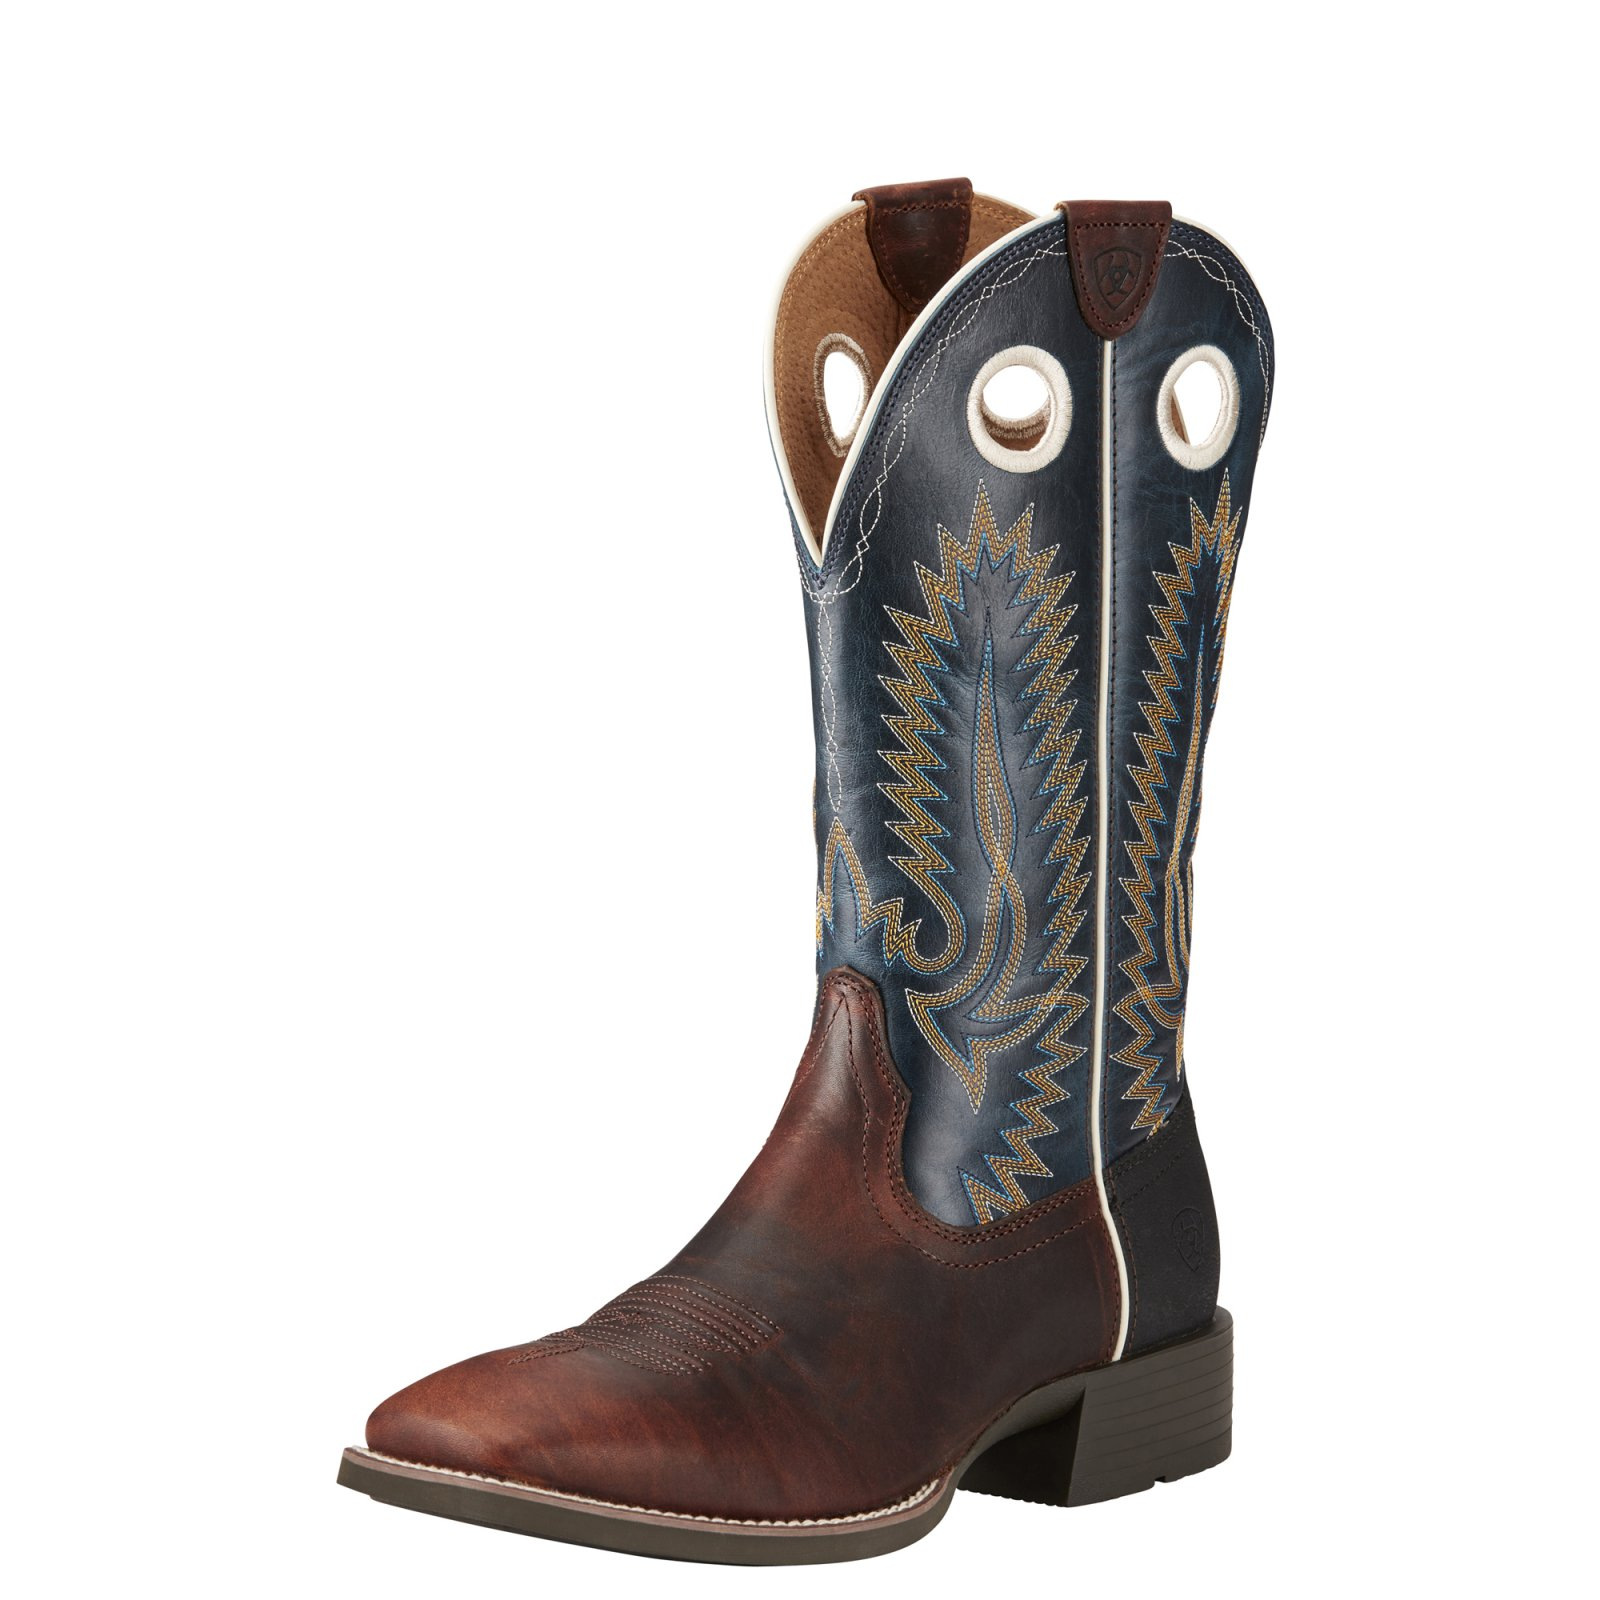 Men's Heritage High Plains Boot from Ariat